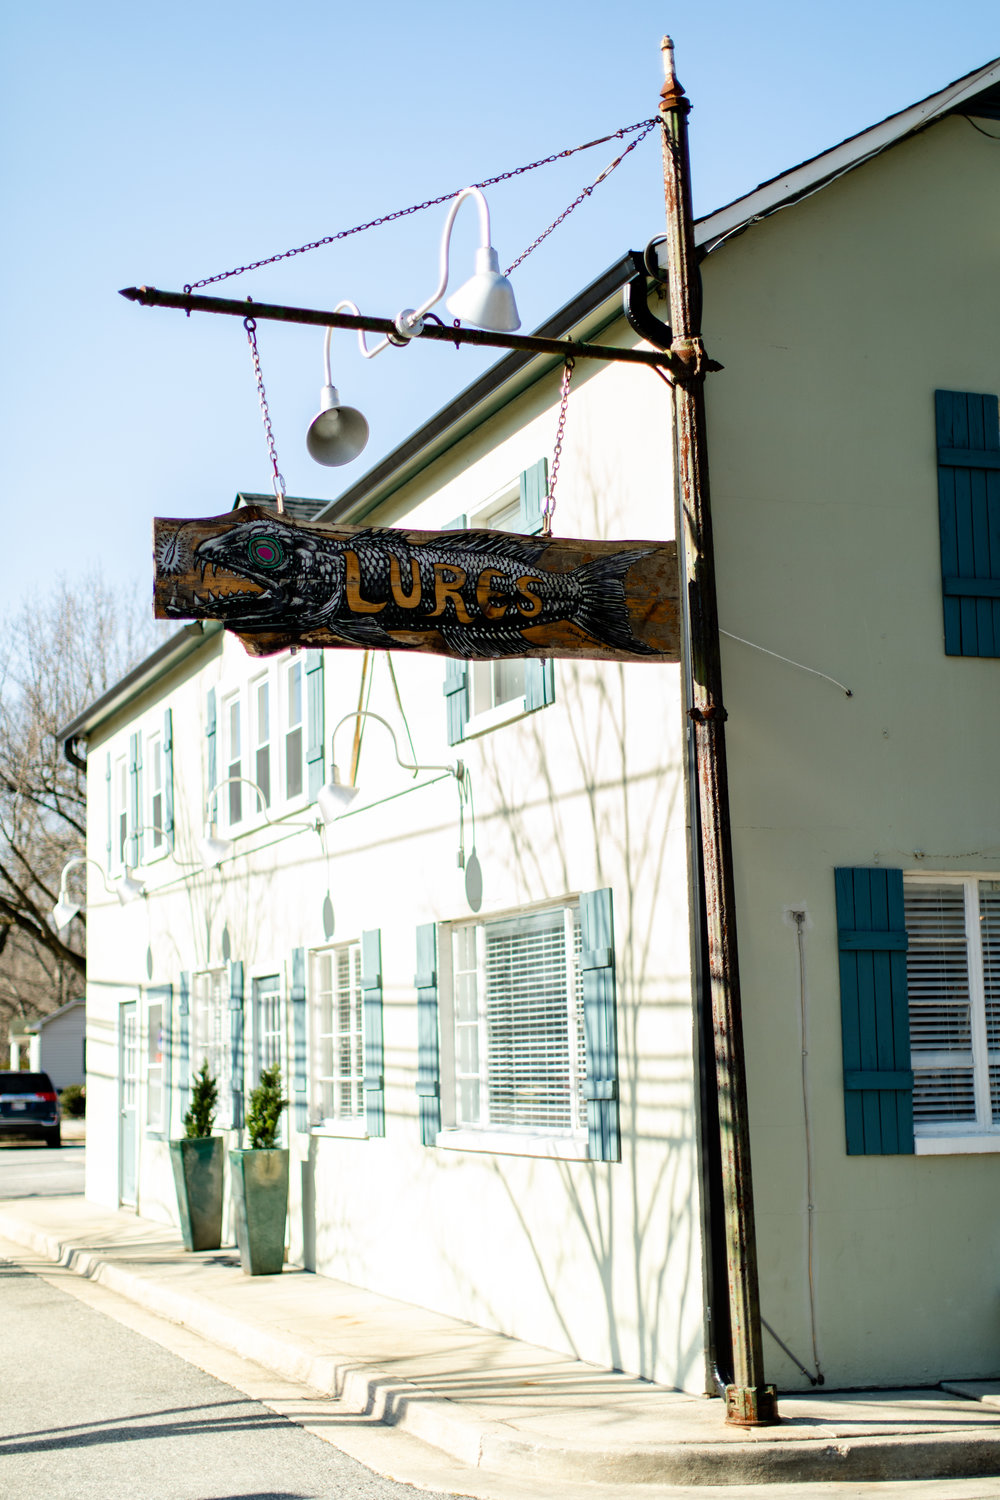 Belle Isle 'Behind the Bar' Lures Bar and Grille_2019-02-28_0898_TSUCALAS.jpg